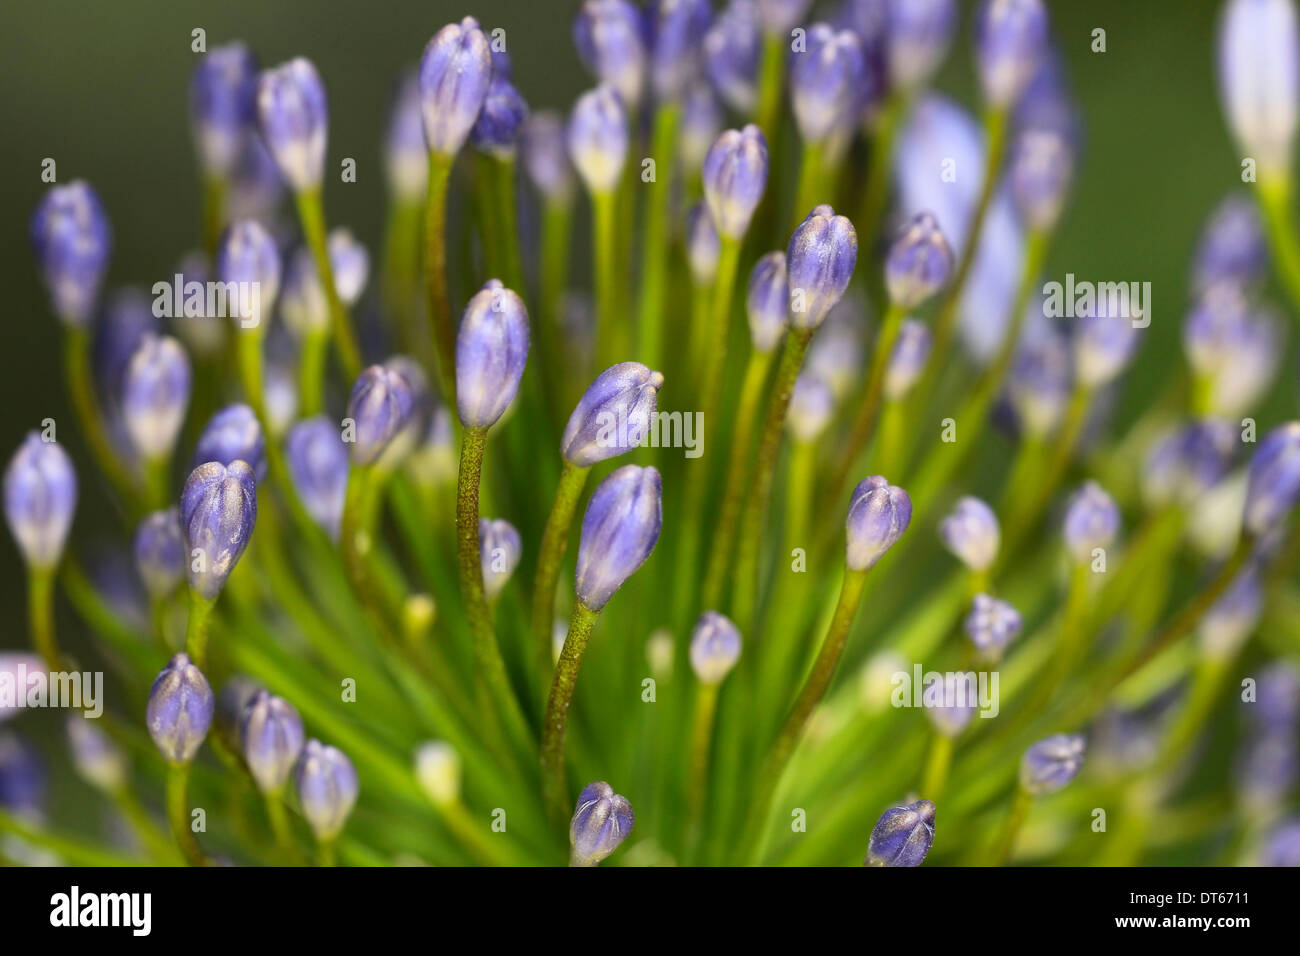 Lily of the nile agapanthus close up of purple flower buds stock lily of the nile agapanthus close up of purple flower buds izmirmasajfo Images